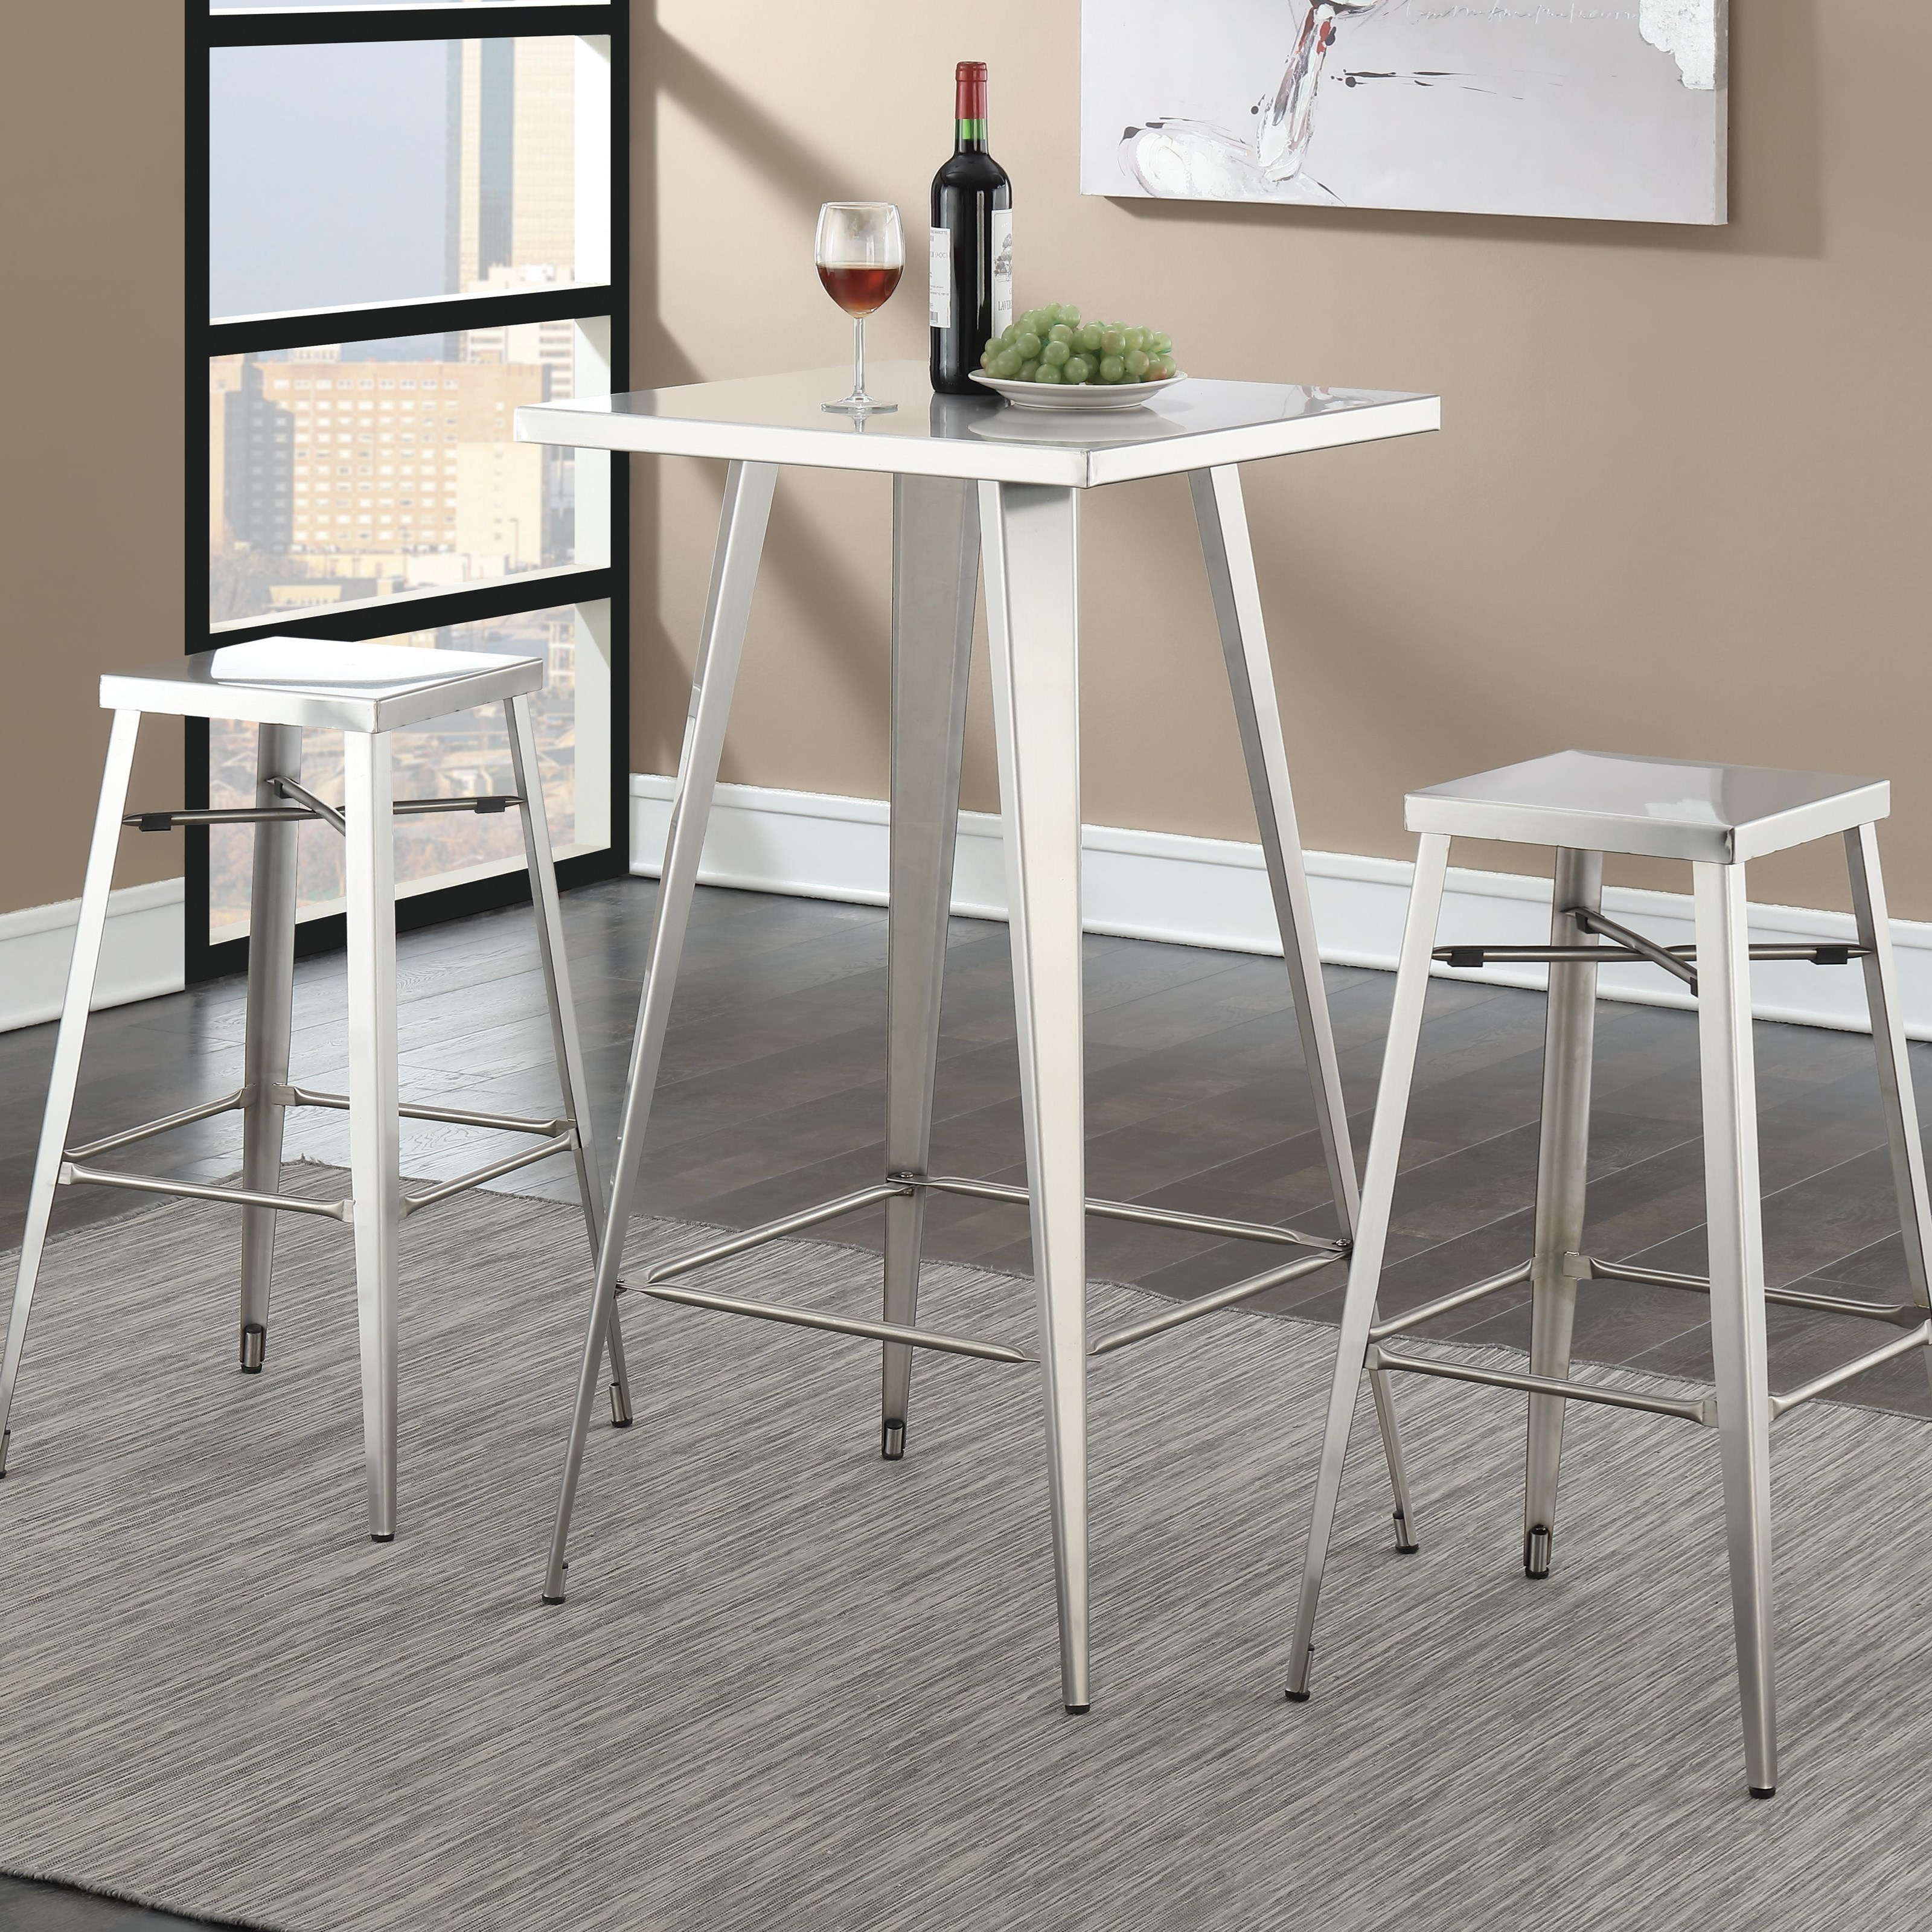 Beau Coaster Bar Units And Bar TablesTable And Stool Set ...